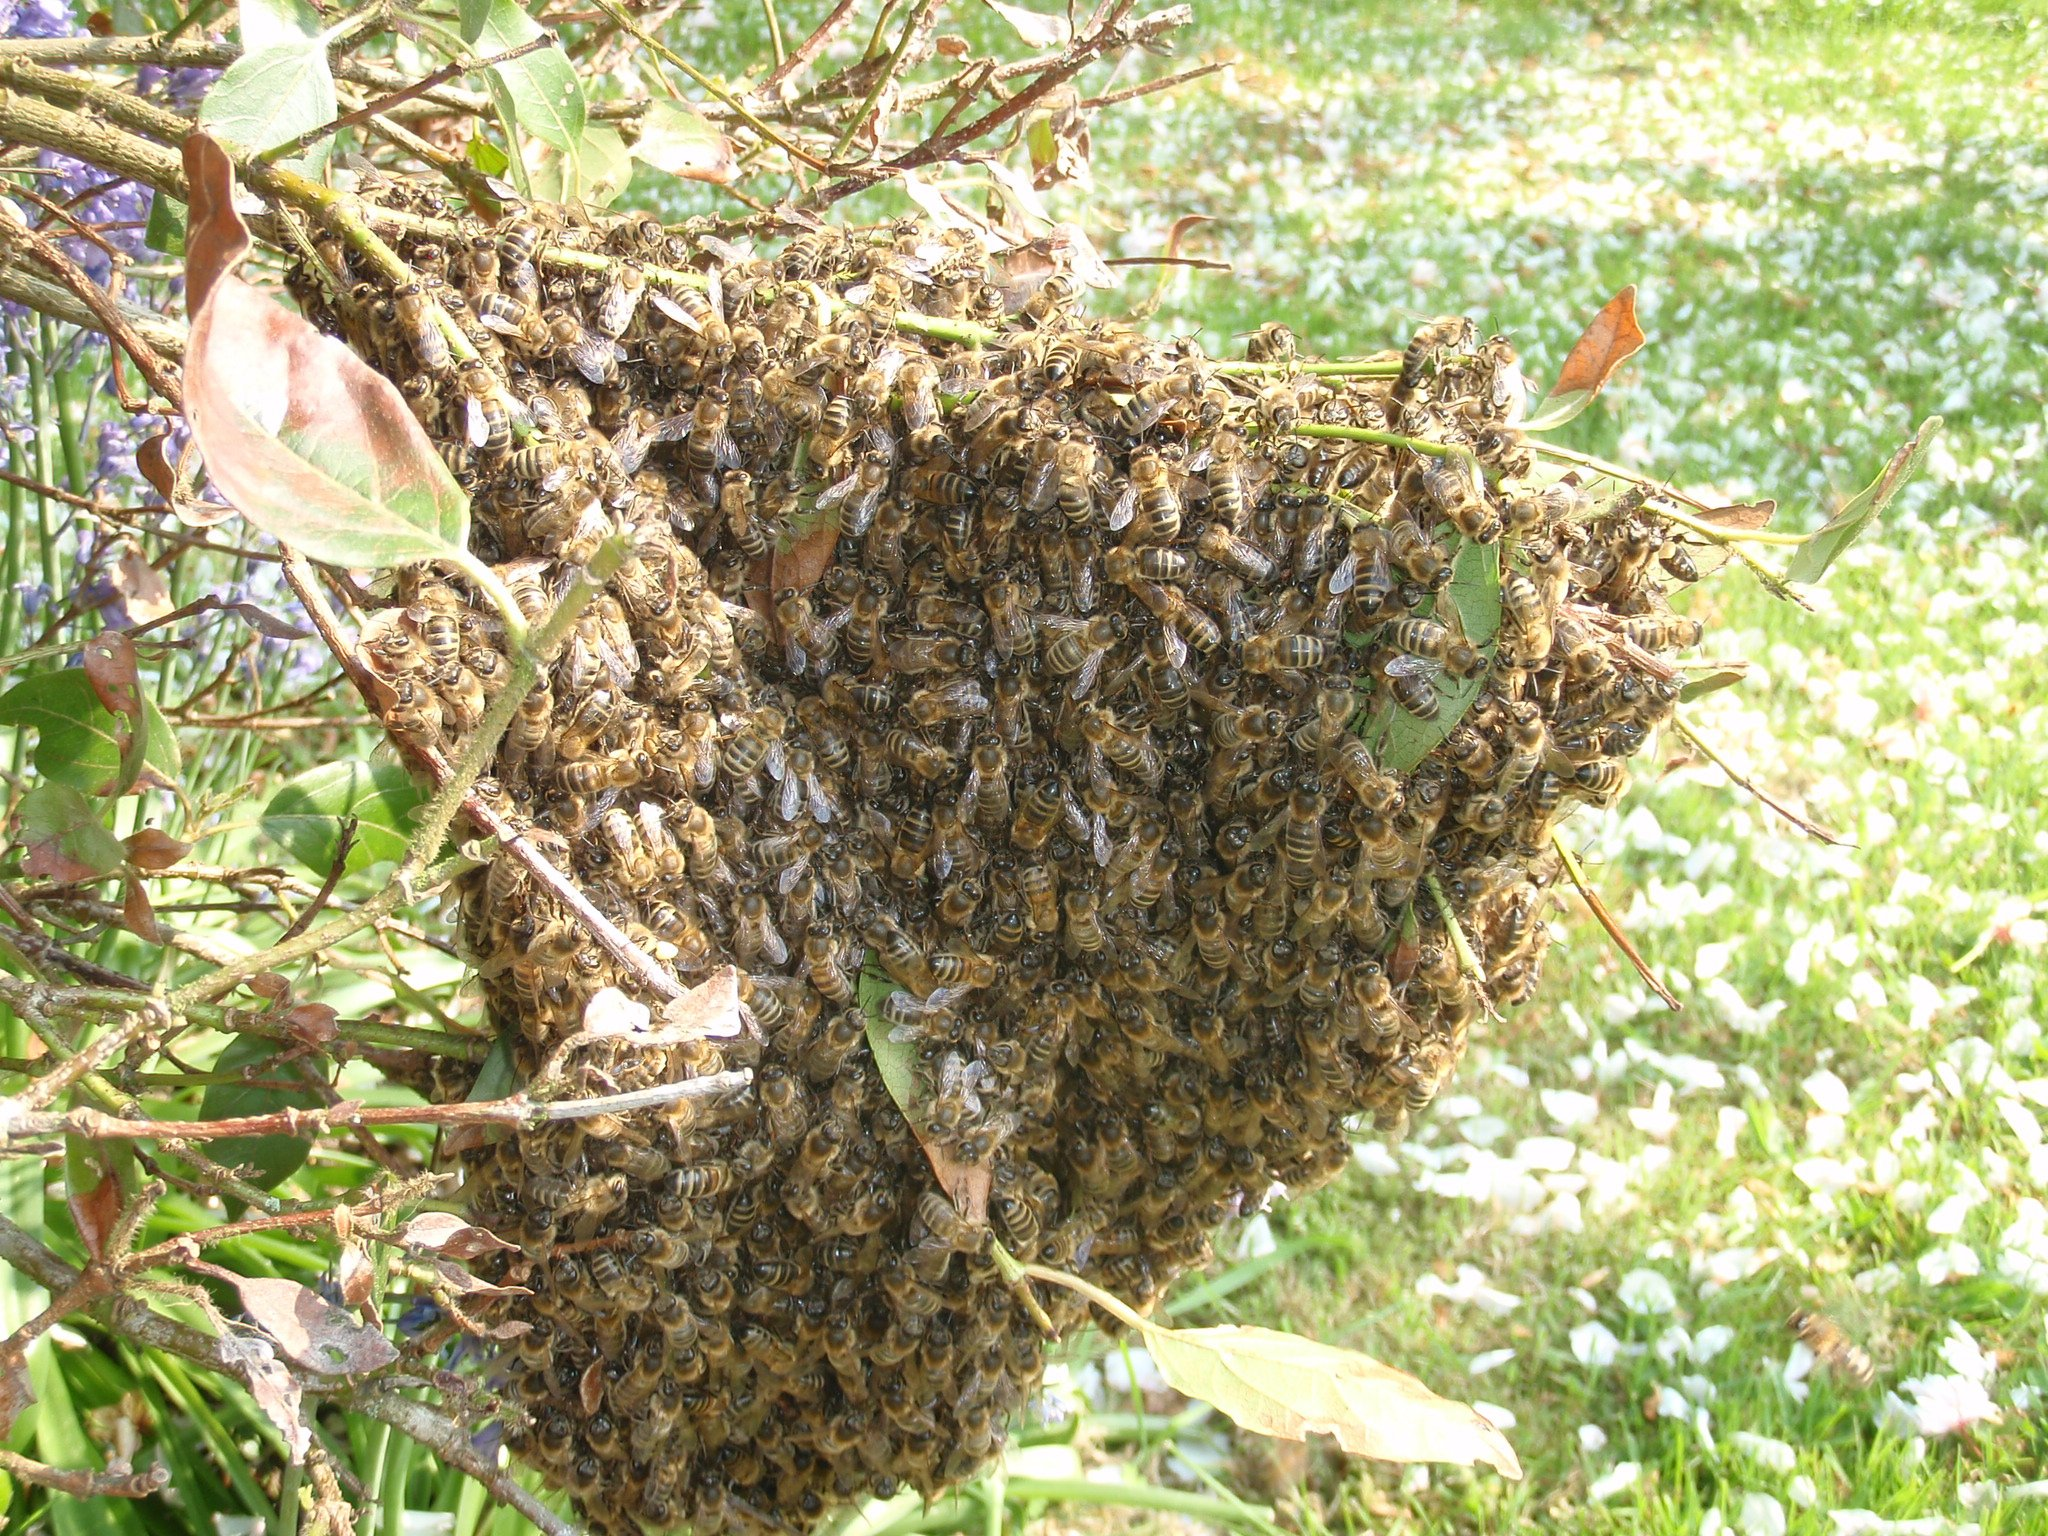 swarm of insects